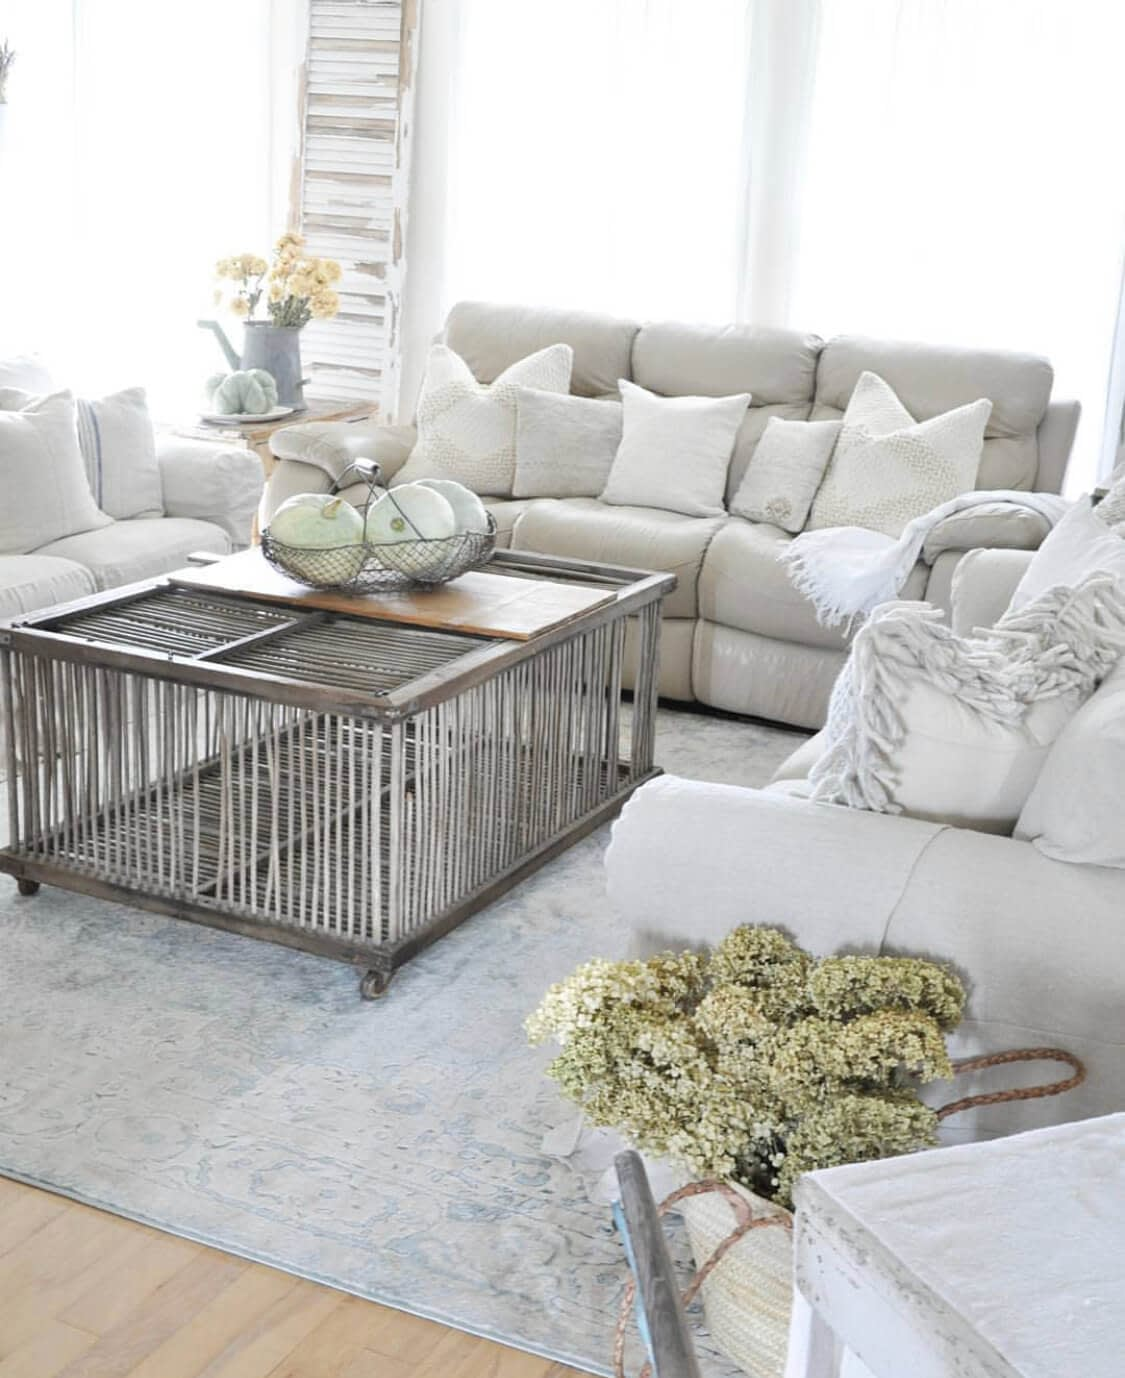 Crab Cage Coffee Table